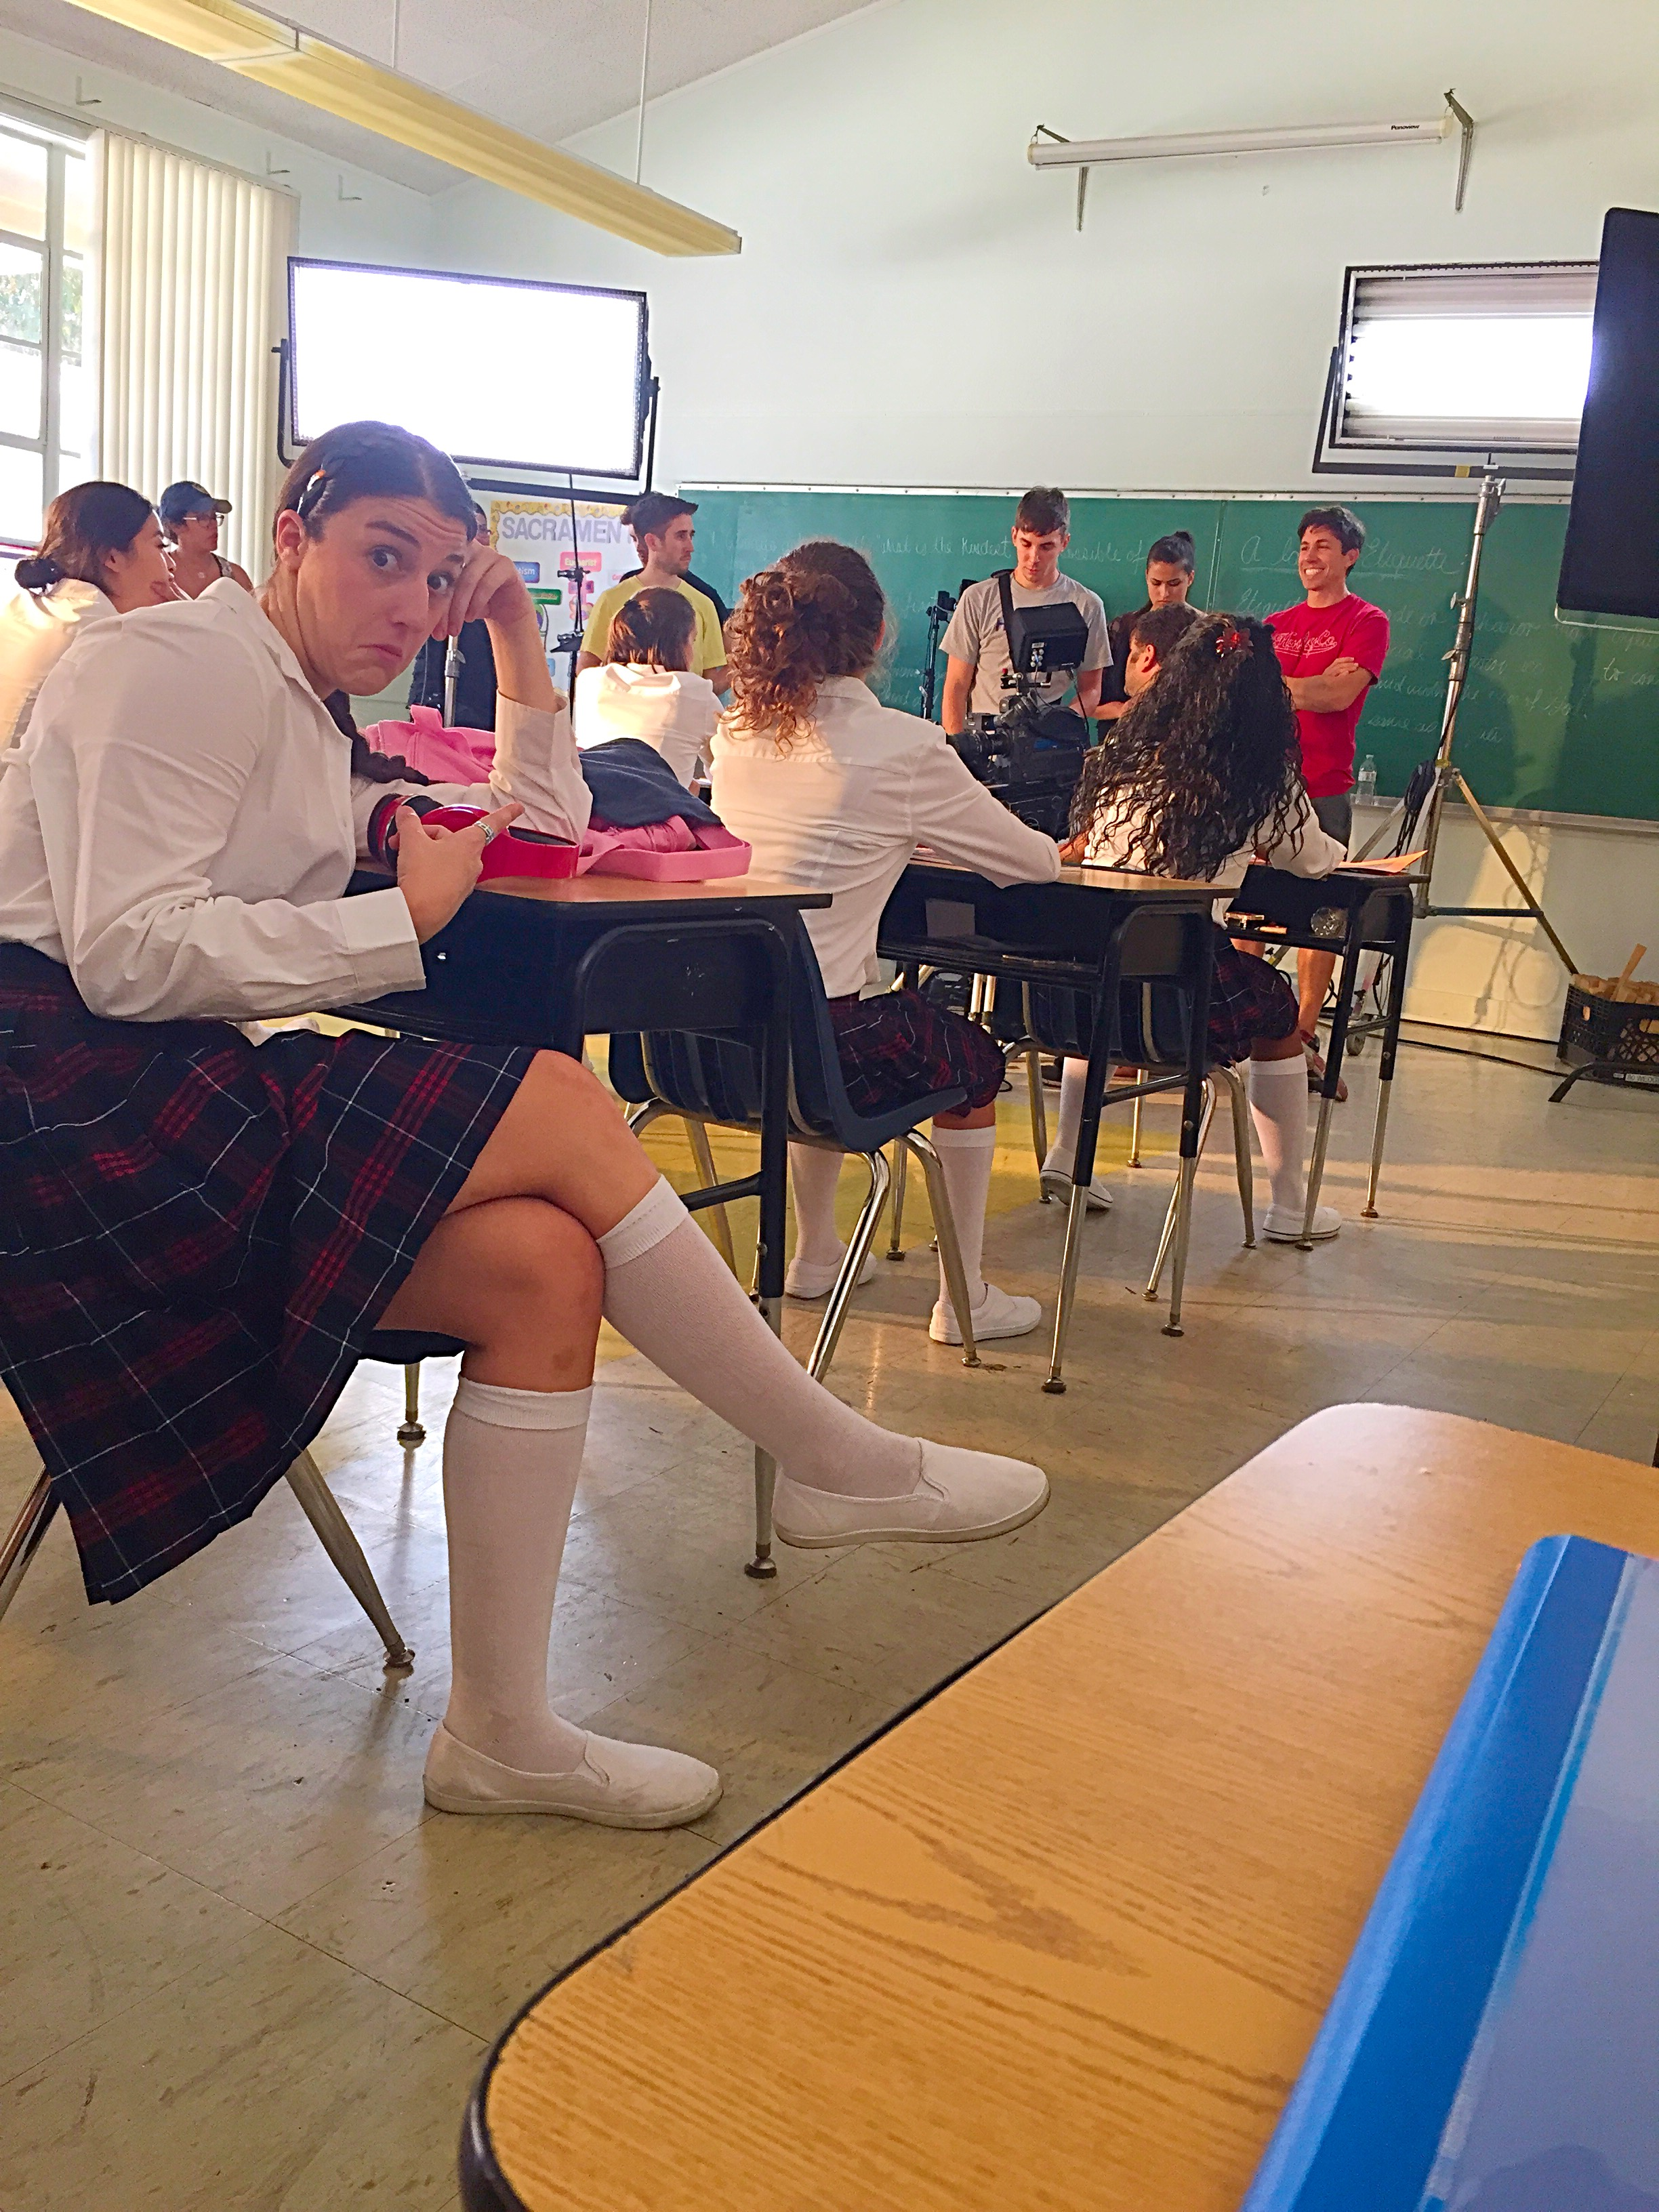 Mary Rachel as a featured dancer/catholic school girl in the feature film 'Breaking Legs'